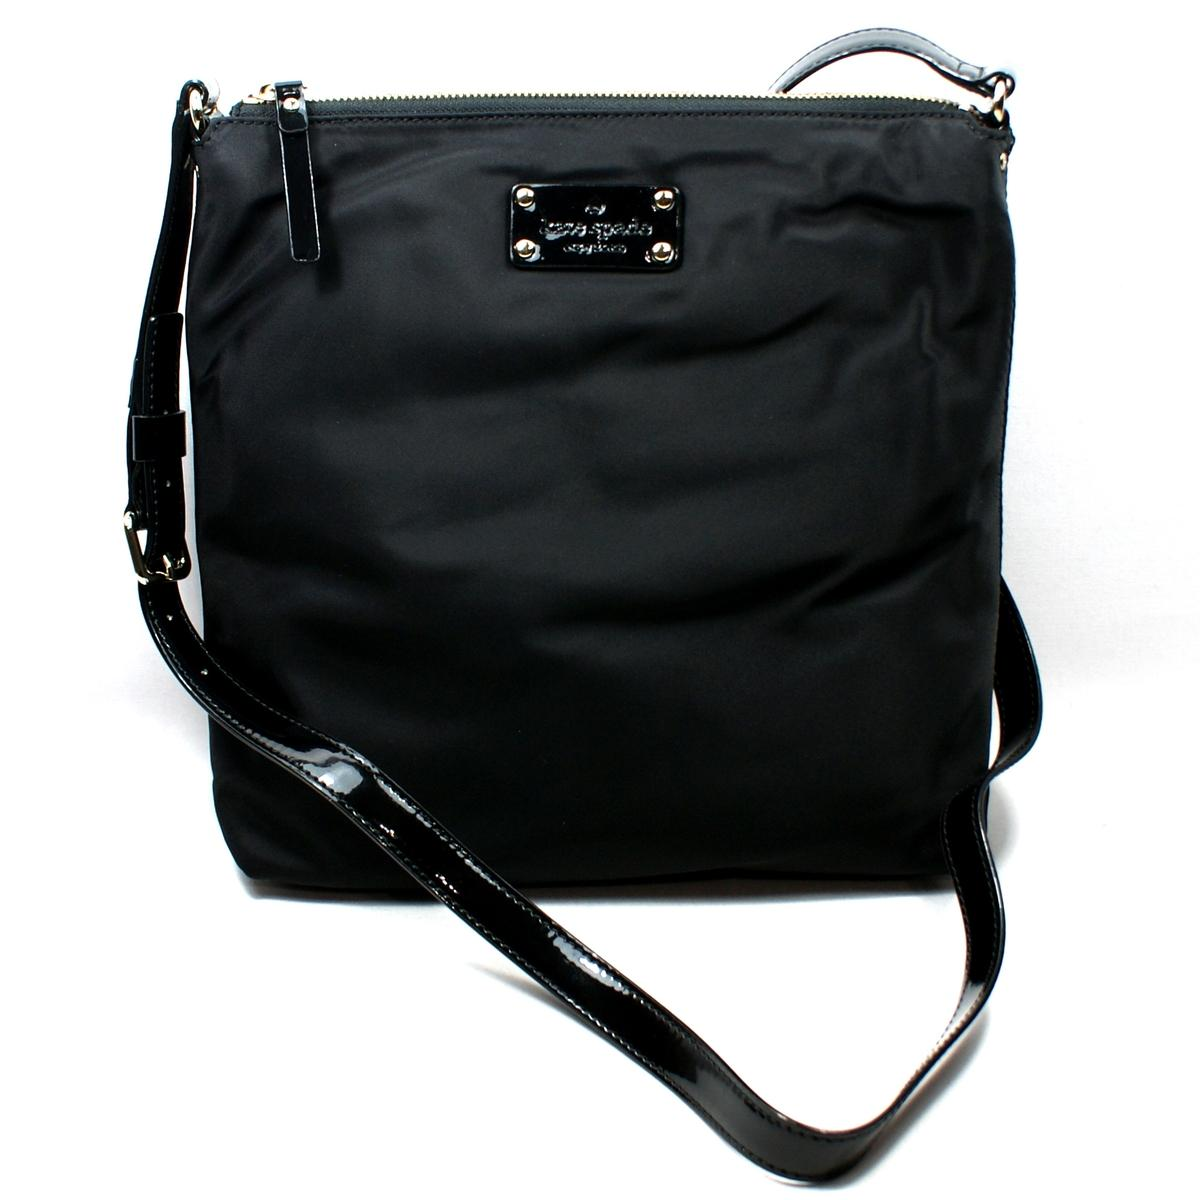 White Spade Black Diaper Kate And Bag